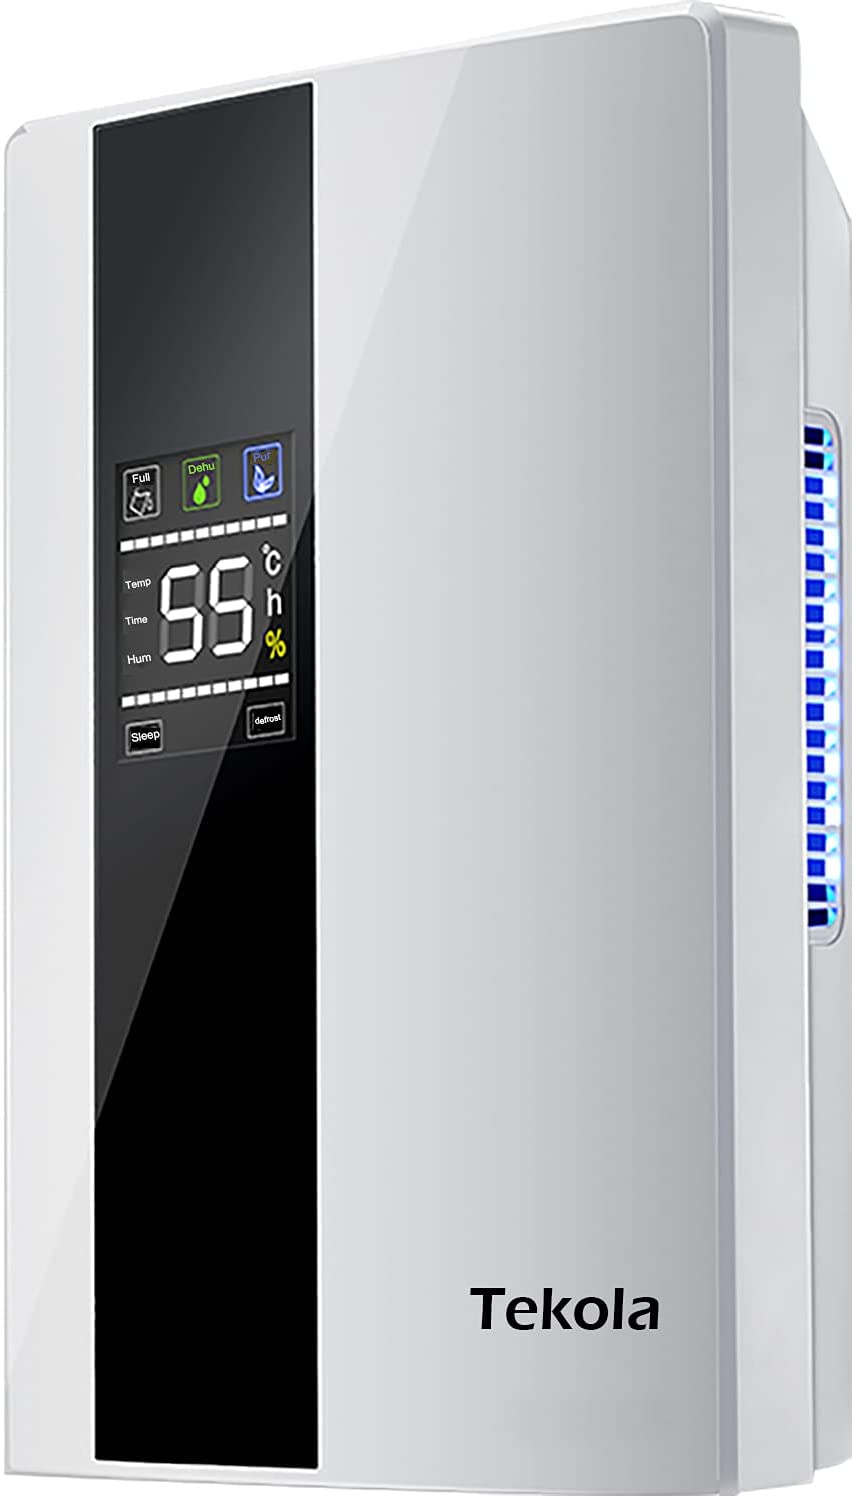 Dehumidifiers for Home, Up to 550 Sq. ft Dehumidifiers for High Humidity with Remote Control, 73oz Ultra Quiet with Two-Mode, Auto Shut Off for Basement, Bathroom, RV, Office